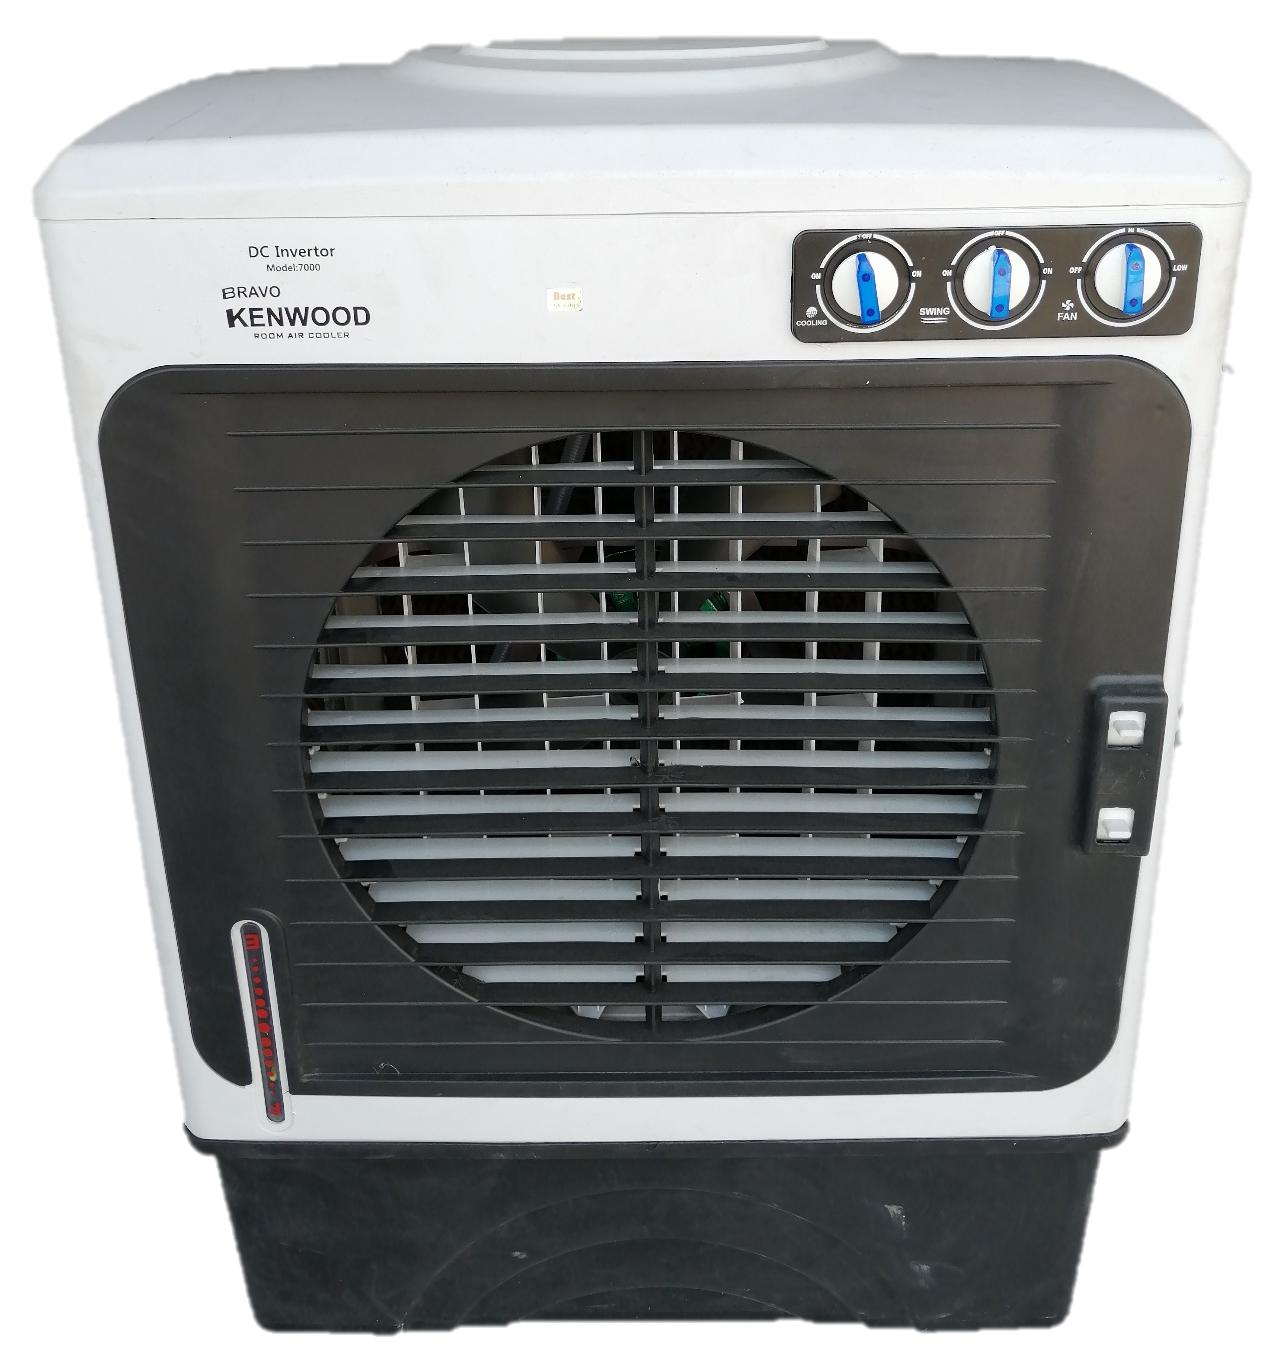 KENWOOD 7000 Air Room Cooler with 99 99% Pure Copper Wire Energy Efficient  Motor , Evaporative Pad , Smart Pump, 220V with 4 Wheels Free